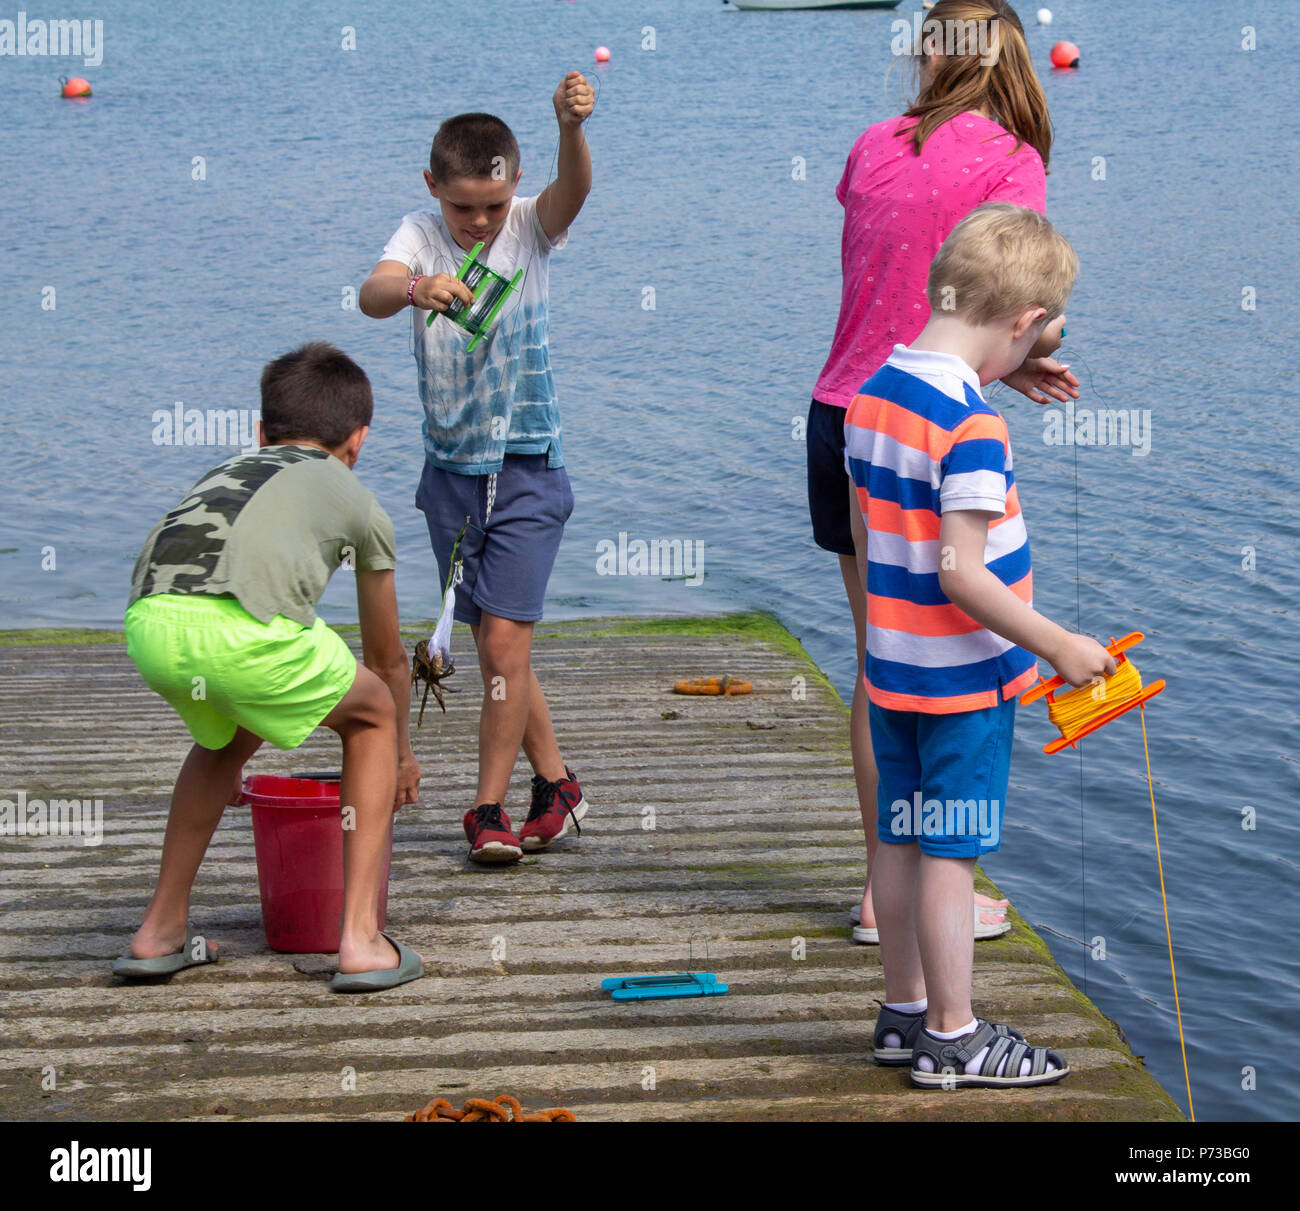 castletownshend-west-cork-ireland-4th-july-2018-mums-and-children-fishing-for-crabs-beside-the-slipway-in-castletownshend-on-yet-another-gloriously-sunny-afternoon-credit-aphperspectivealamy-live-news-P73BG0.jpg